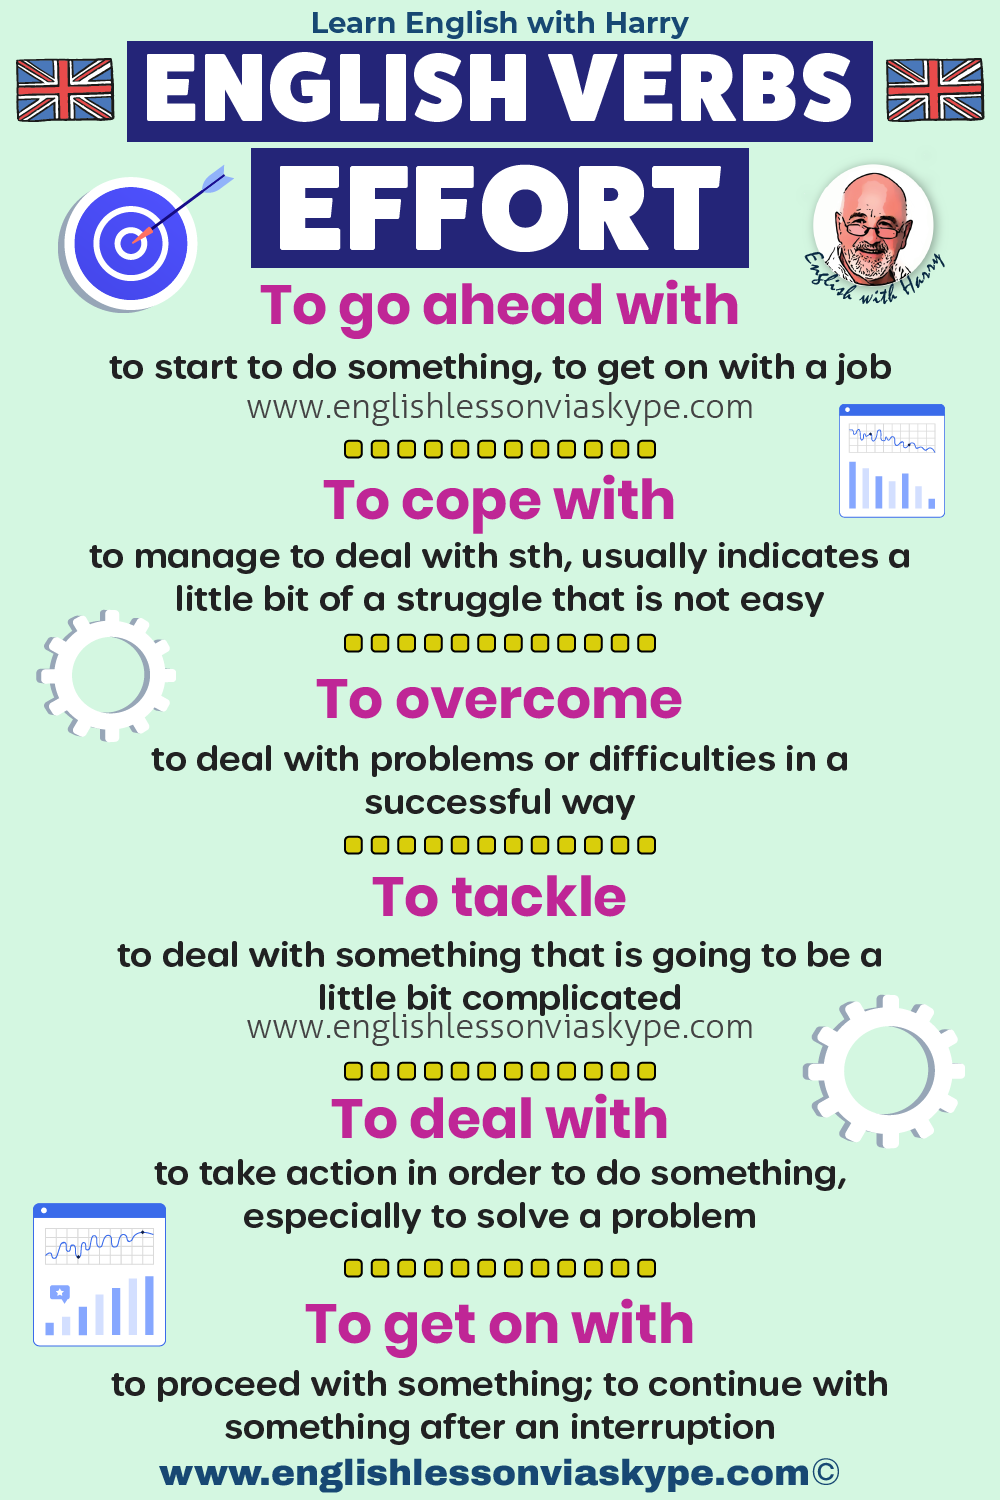 Verbs of effort in English. How talk about efforts in English. Advanced English learning. Online English lessons on Zoom. Study advanced English at www.englishlessonviaskype.com #learnenglish #englishlessons #EnglishTeacher #vocabulary #ingles #อังกฤษ #английский #aprenderingles #english #cursodeingles #учианглийский